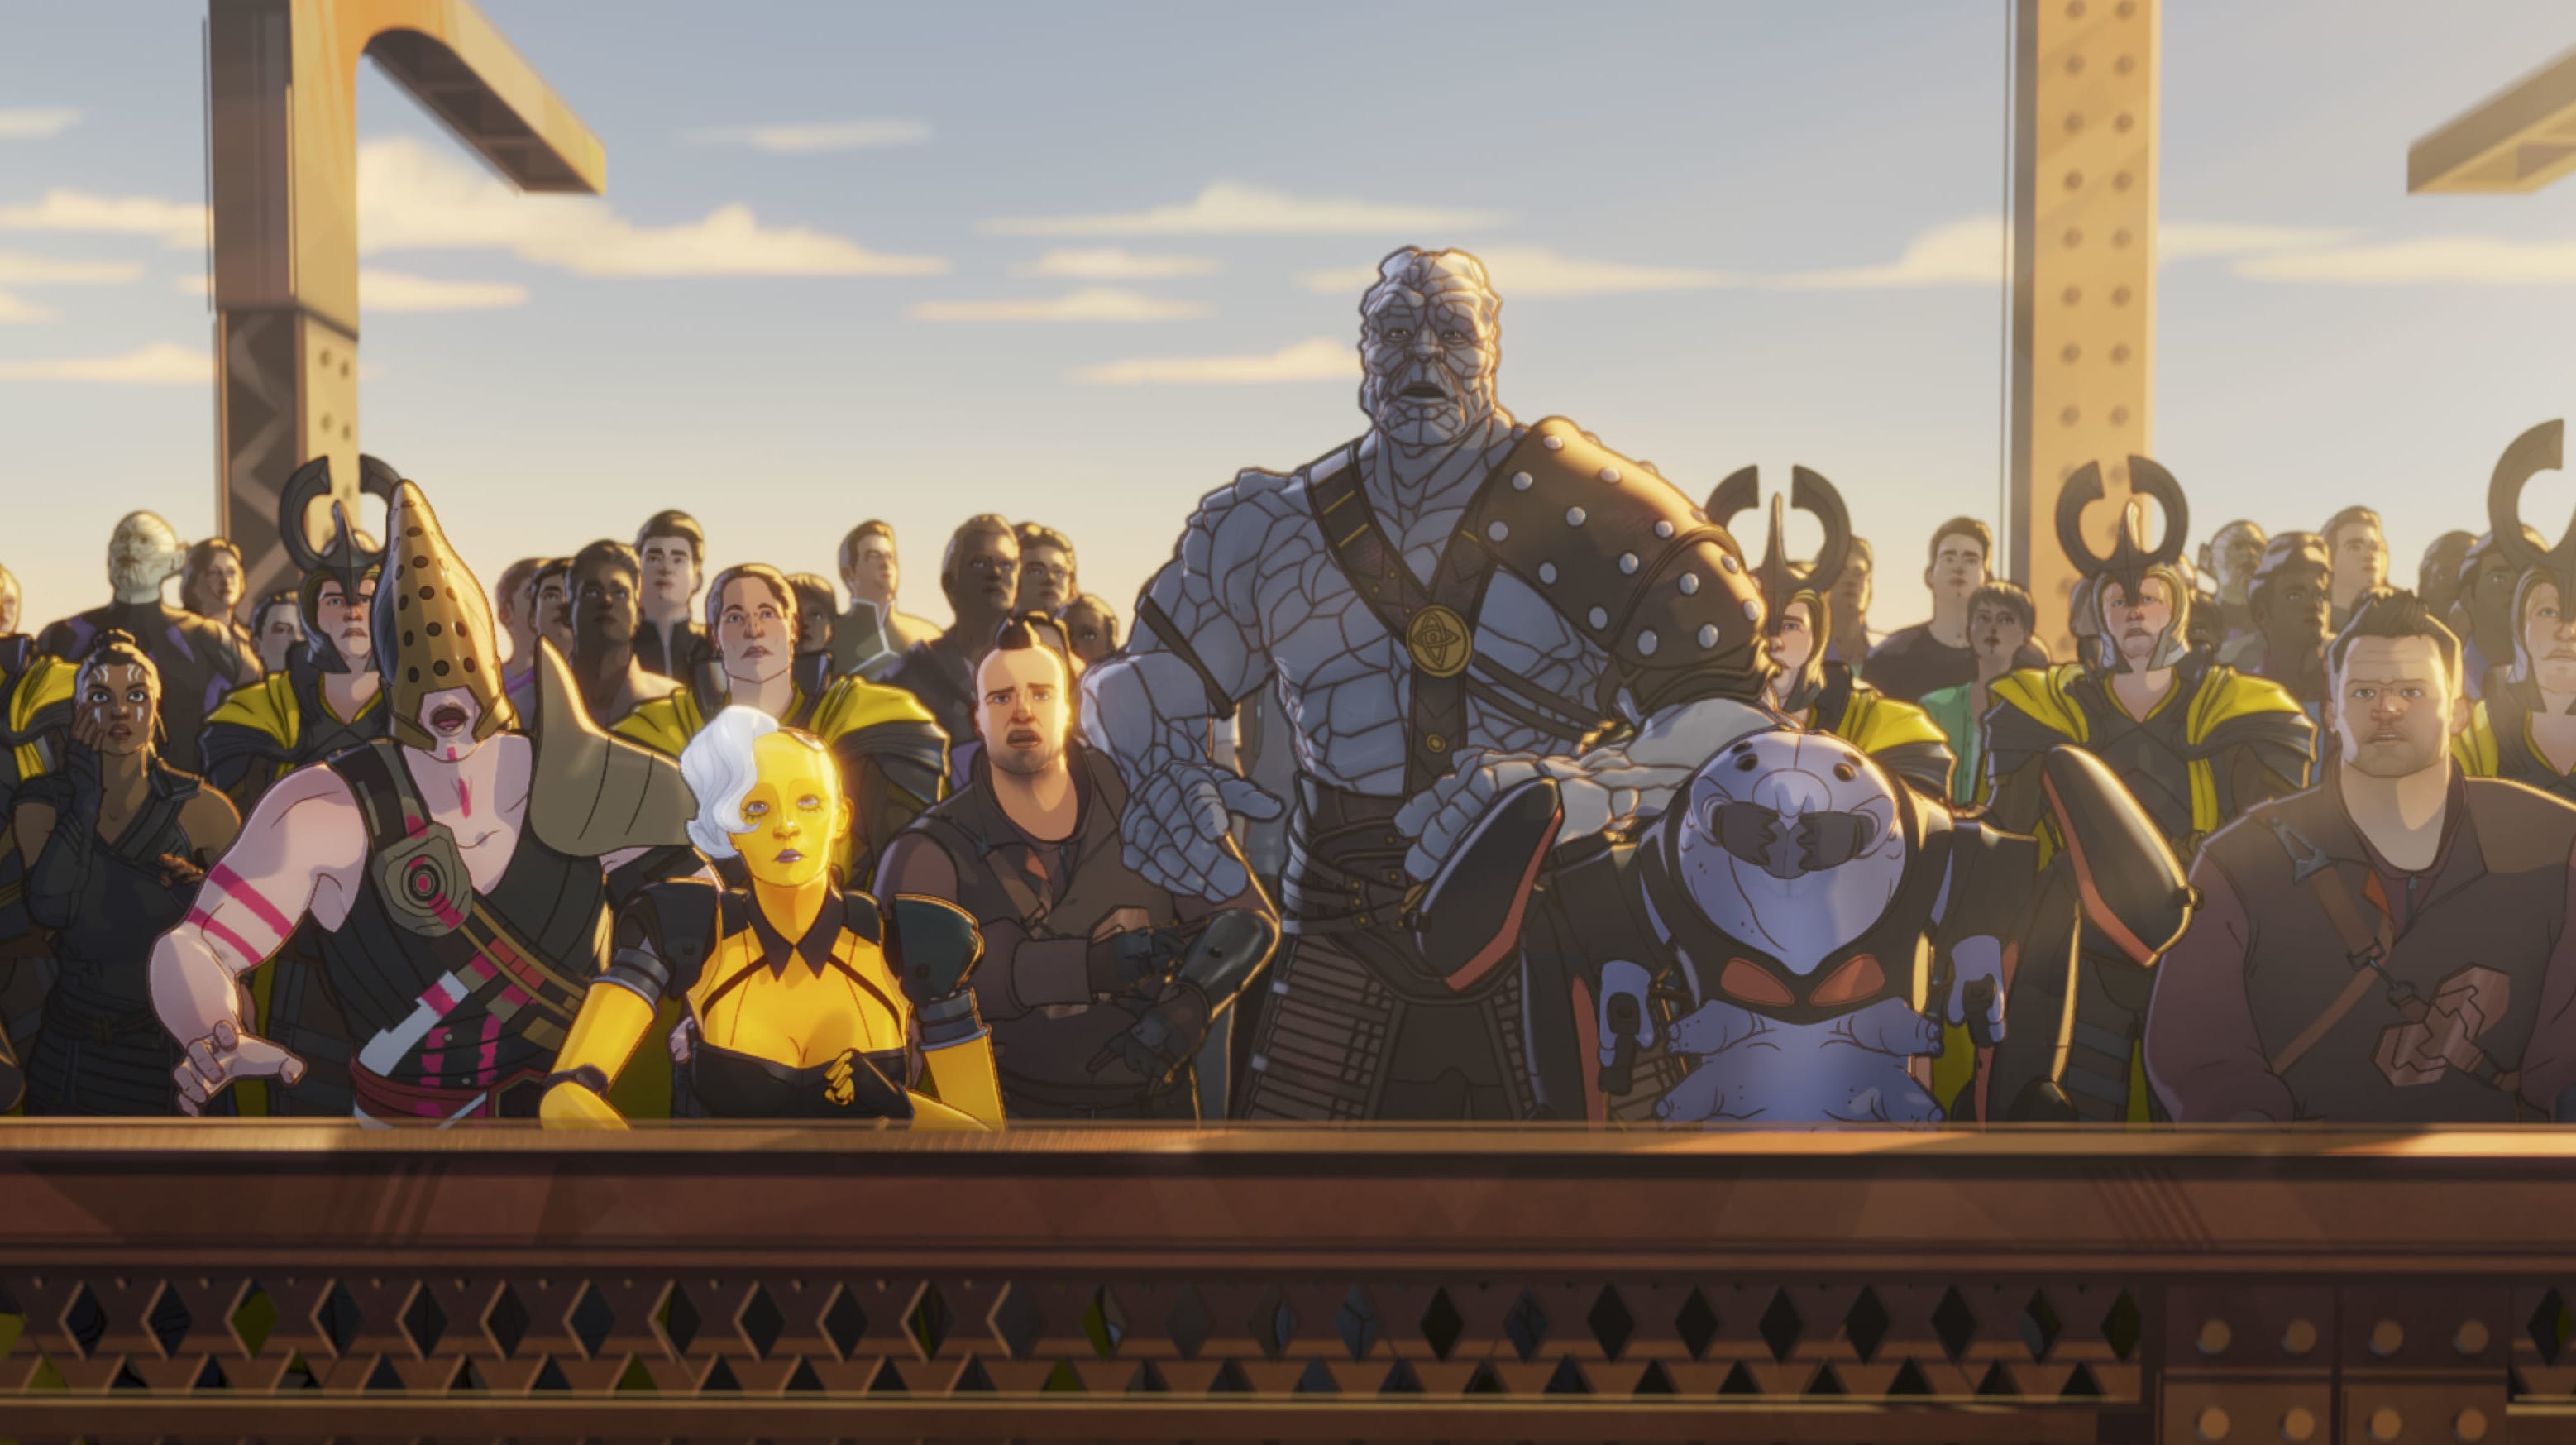 Korg and Miek in Marvel Studios' WHAT IF…? exclusively on Disney+. ©Marvel Studios 2021. All Rights Reserved.